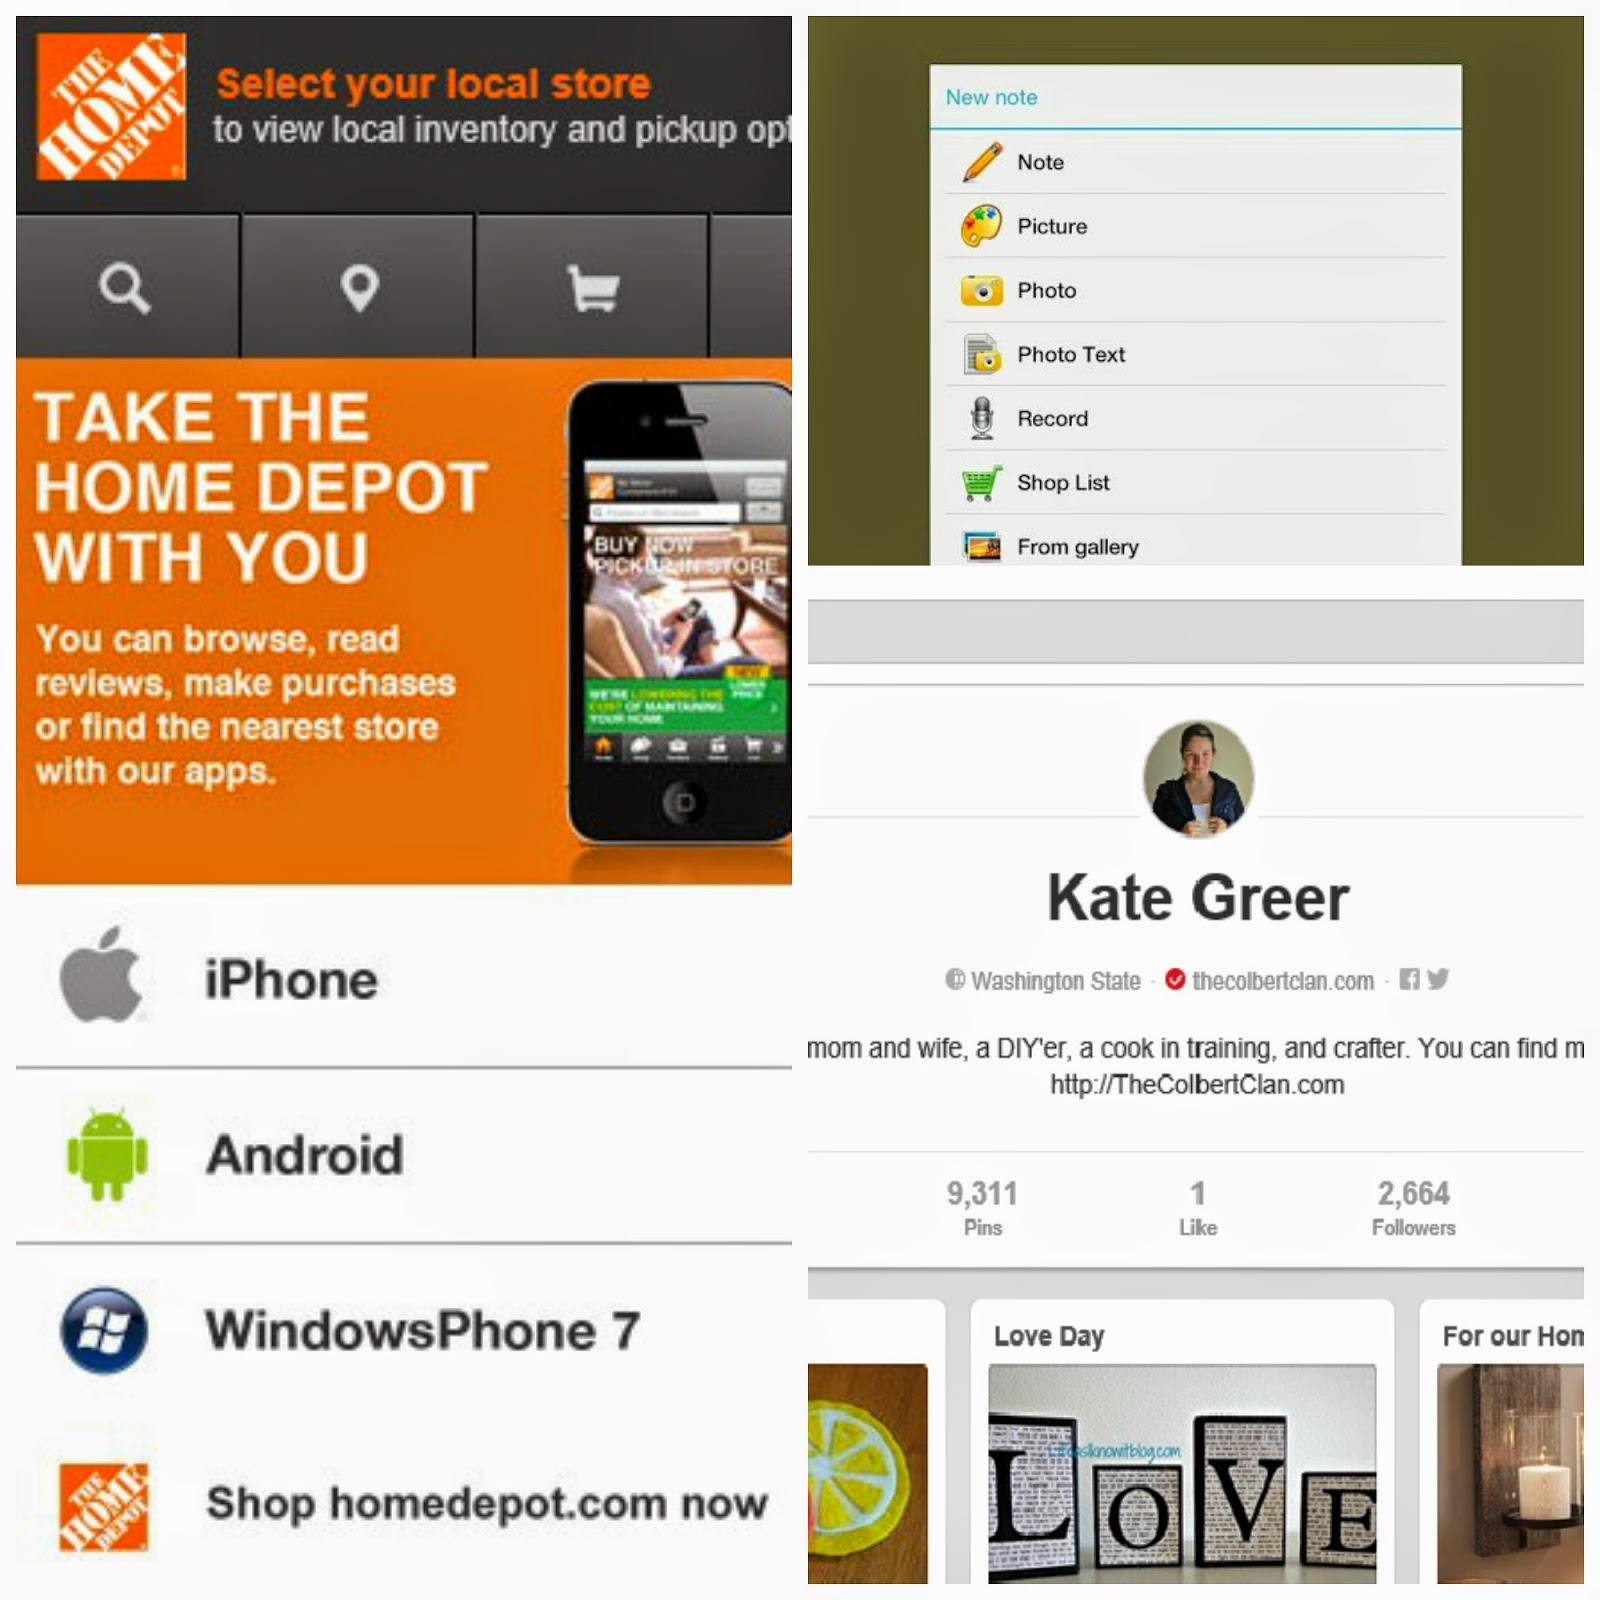 Related image with Home Depot Shopping 2015